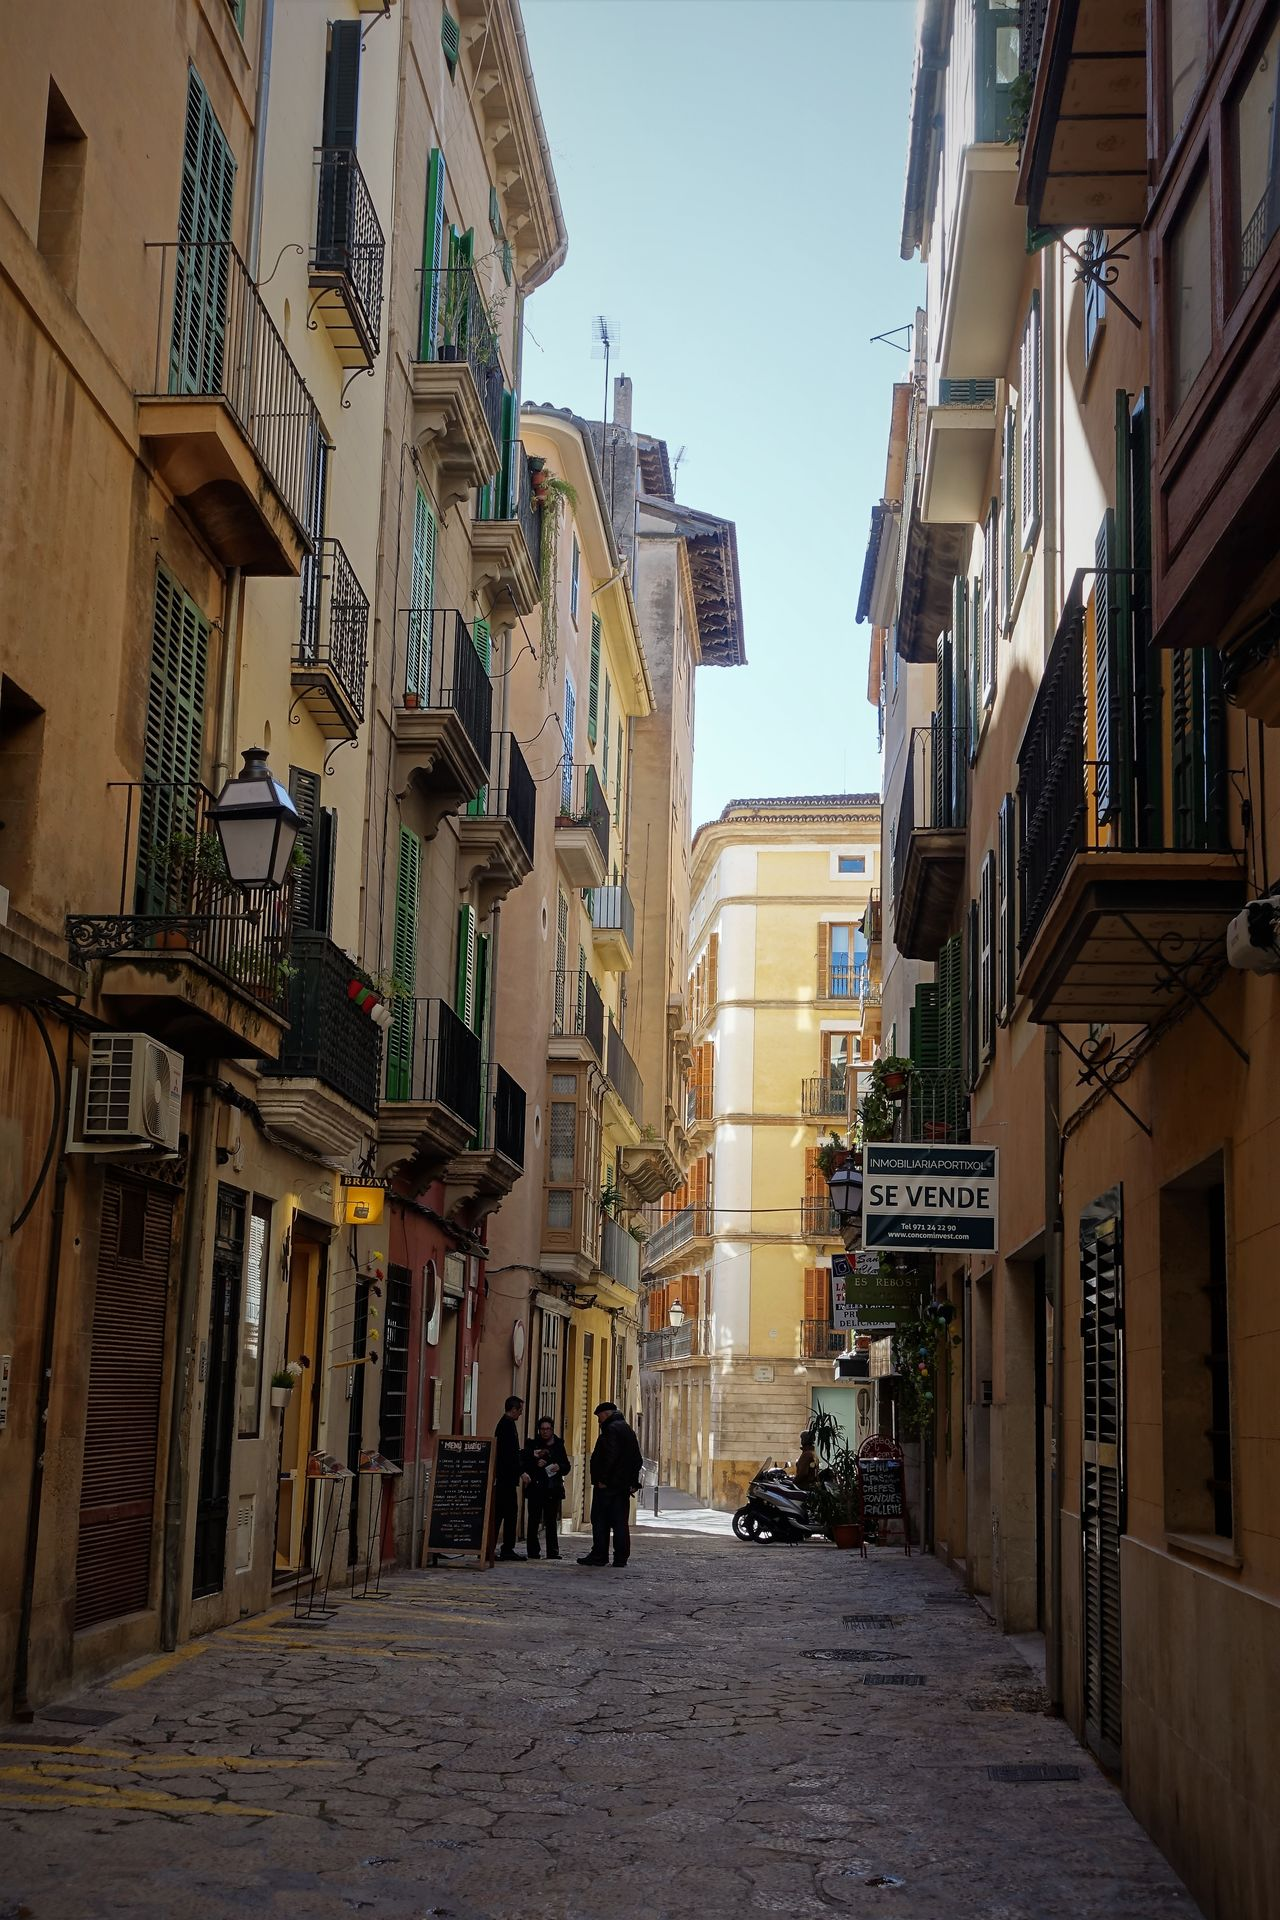 Mallorca Architecture Building Exterior City Day Facade Building No People Old Town Outdoors Sky Travel Destinations